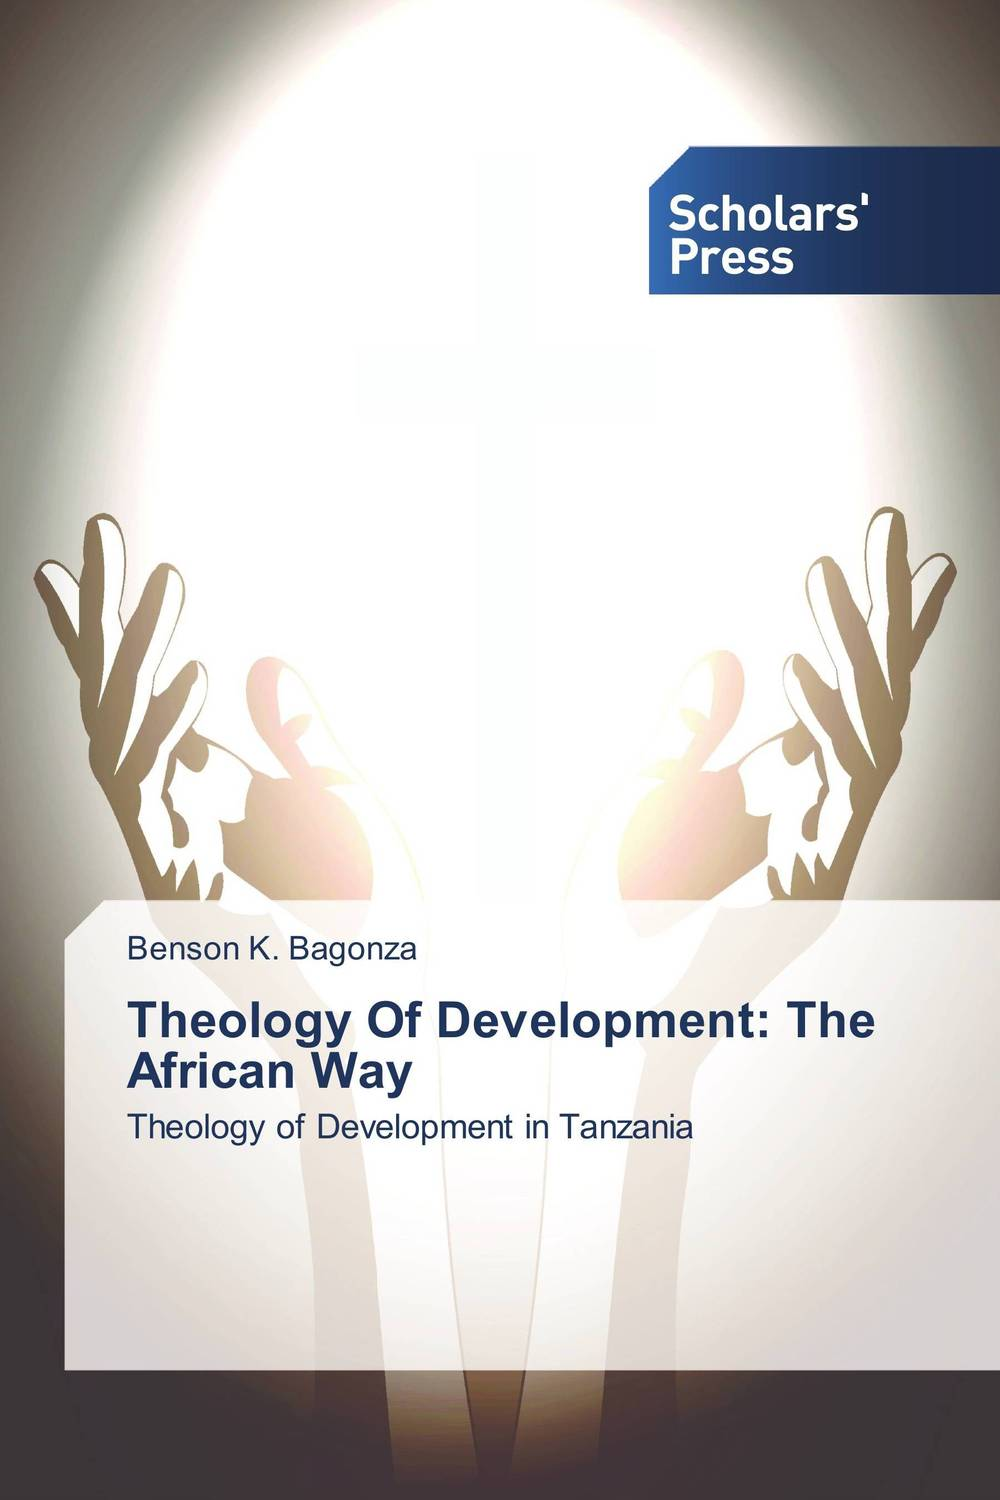 Theology Of Development: The African Way stark велосипед stark outpost 26 1 d 2018 синий зелёный голубой 20